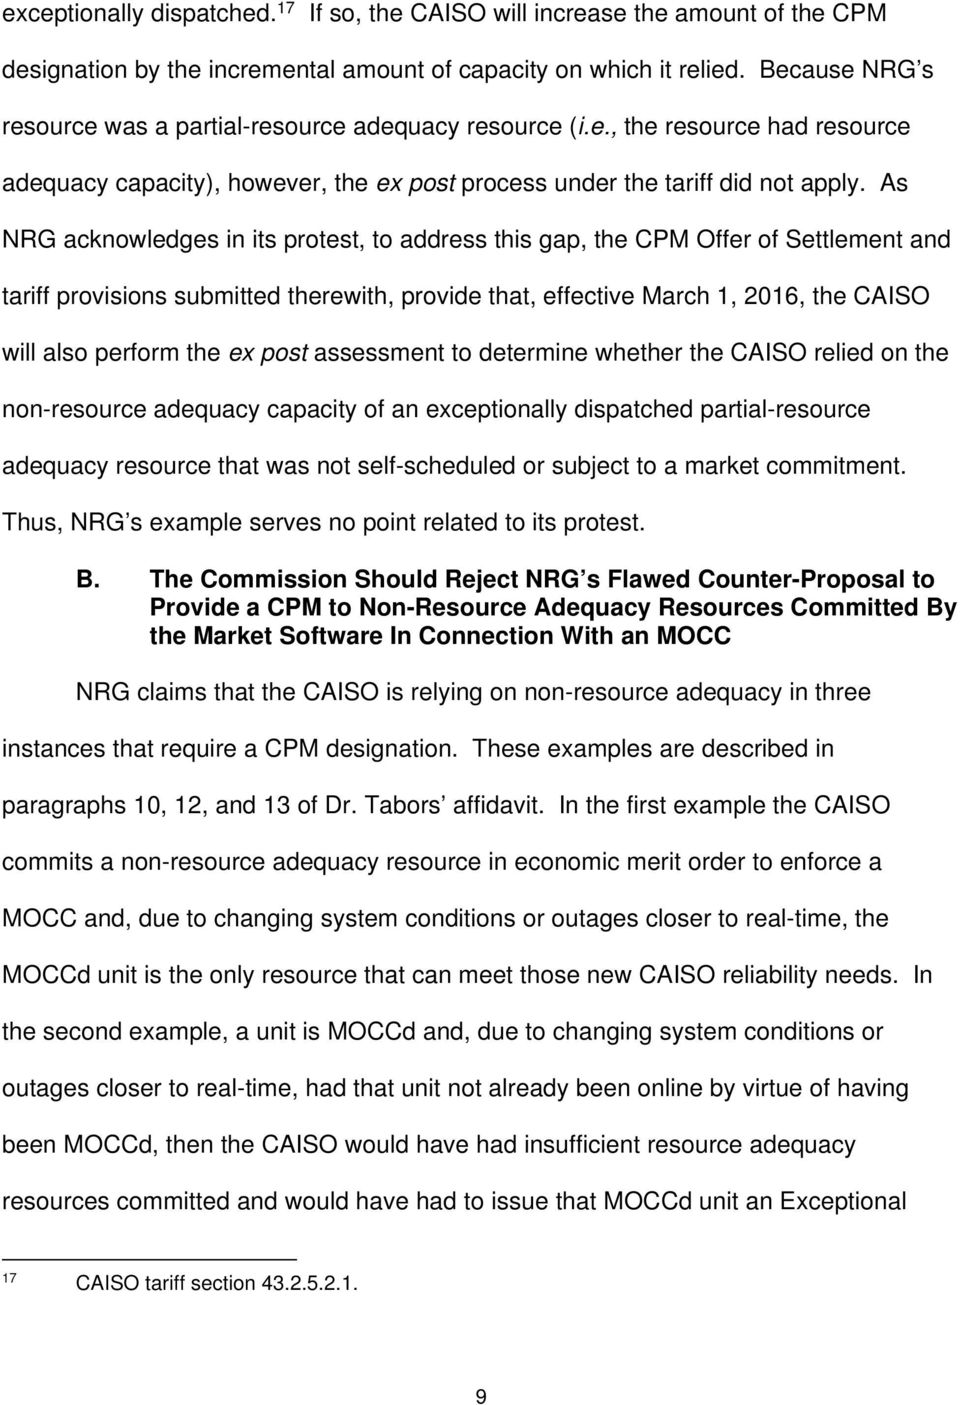 As NRG acknowledges in its protest, to address this gap, the CPM Offer of Settlement and tariff provisions submitted therewith, provide that, effective March 1, 2016, the CAISO will also perform the